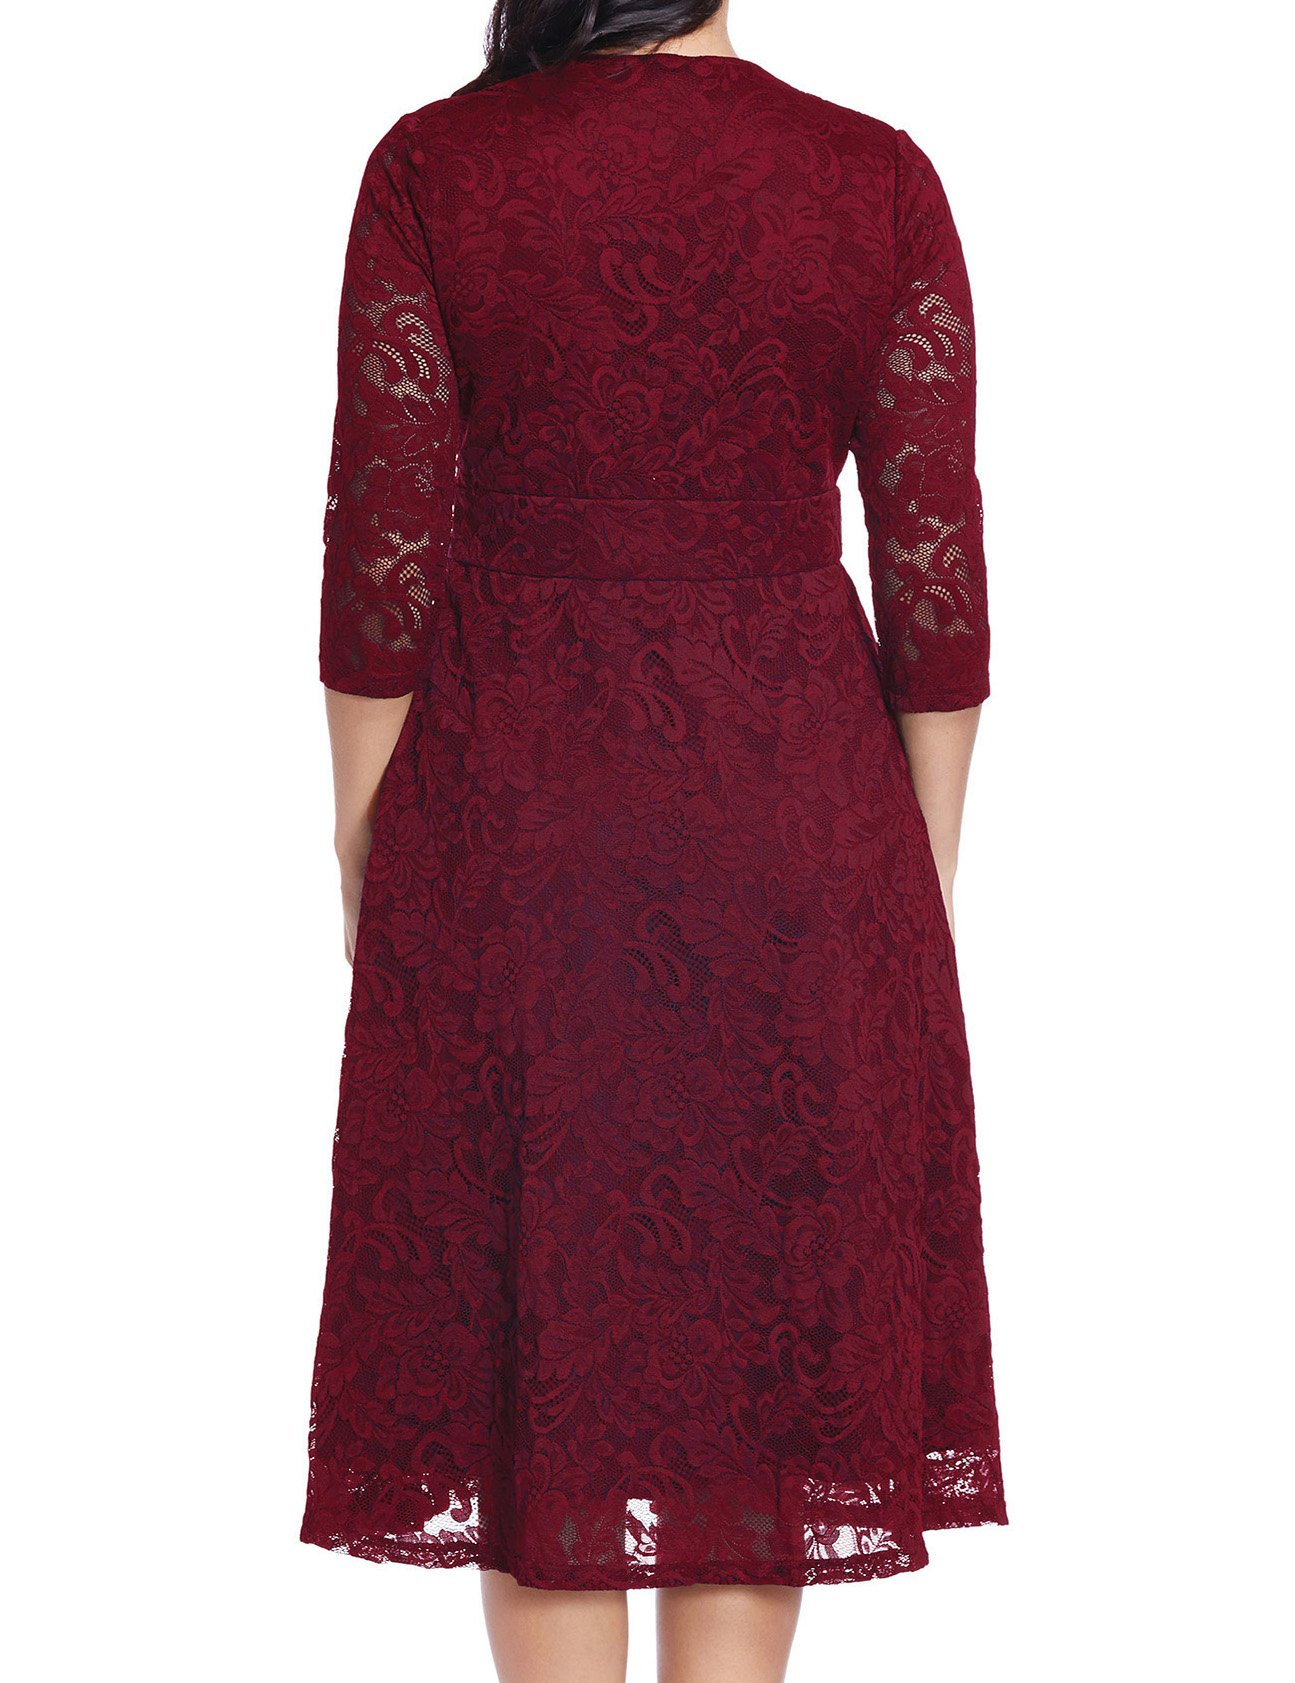 GRAPENT Women's Lace Plus Size Mother Of The Bride Skater Dress Bridal Wedding Party Maroon 16W by GRAPENT (Image #2)